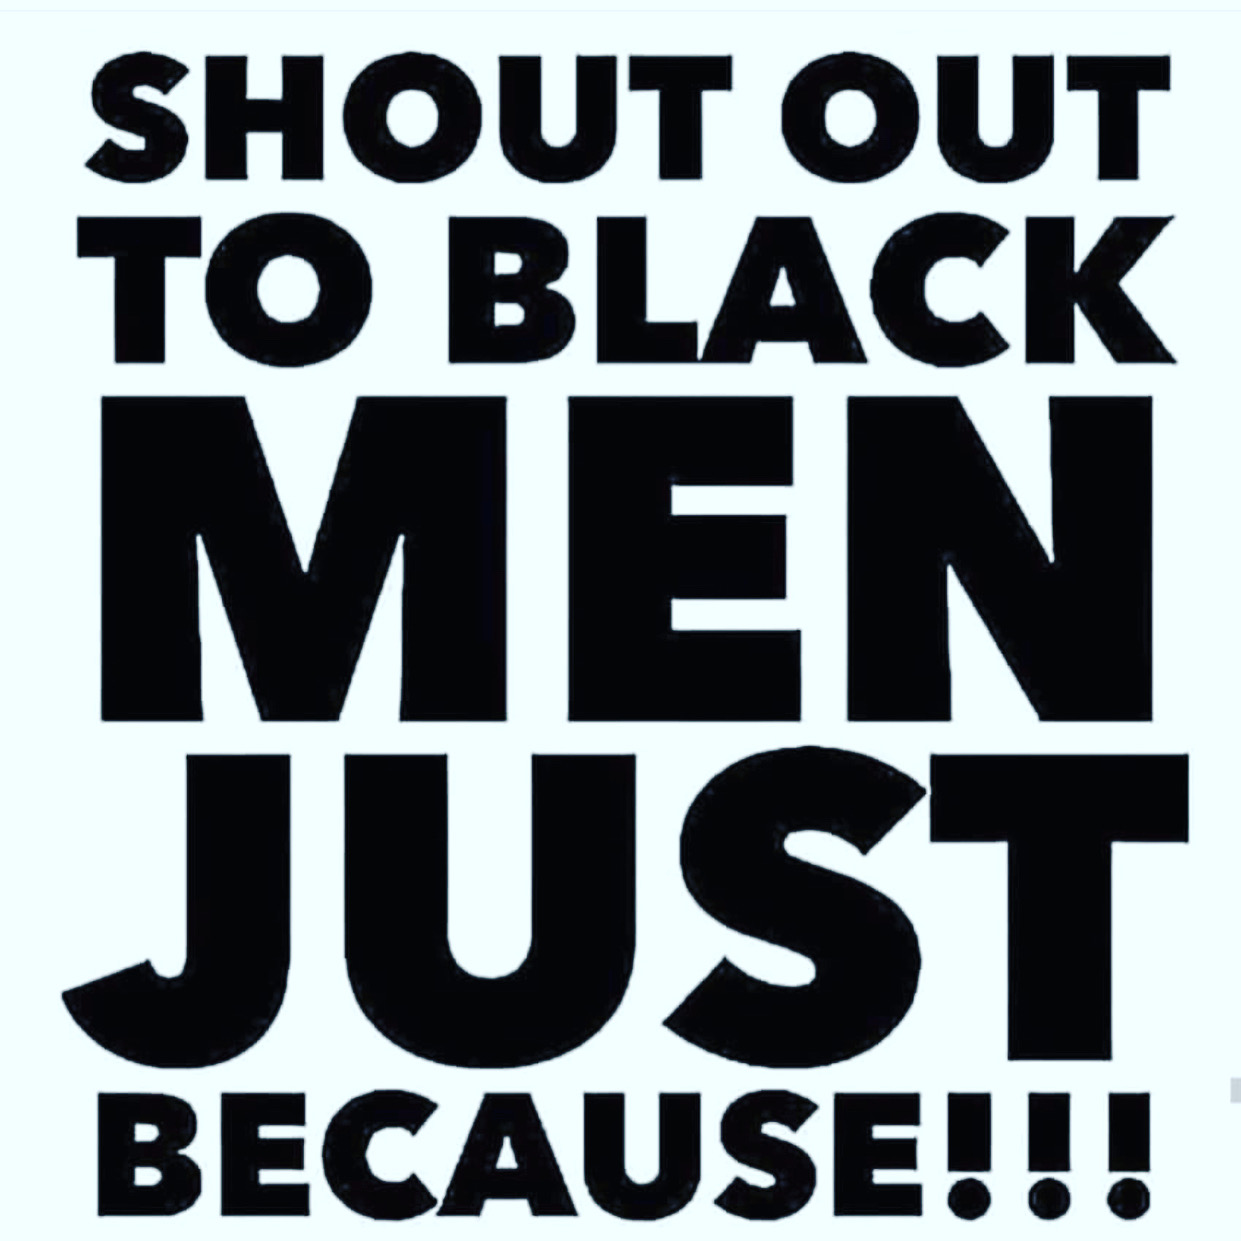 BLACK MEN SHOUTOUT